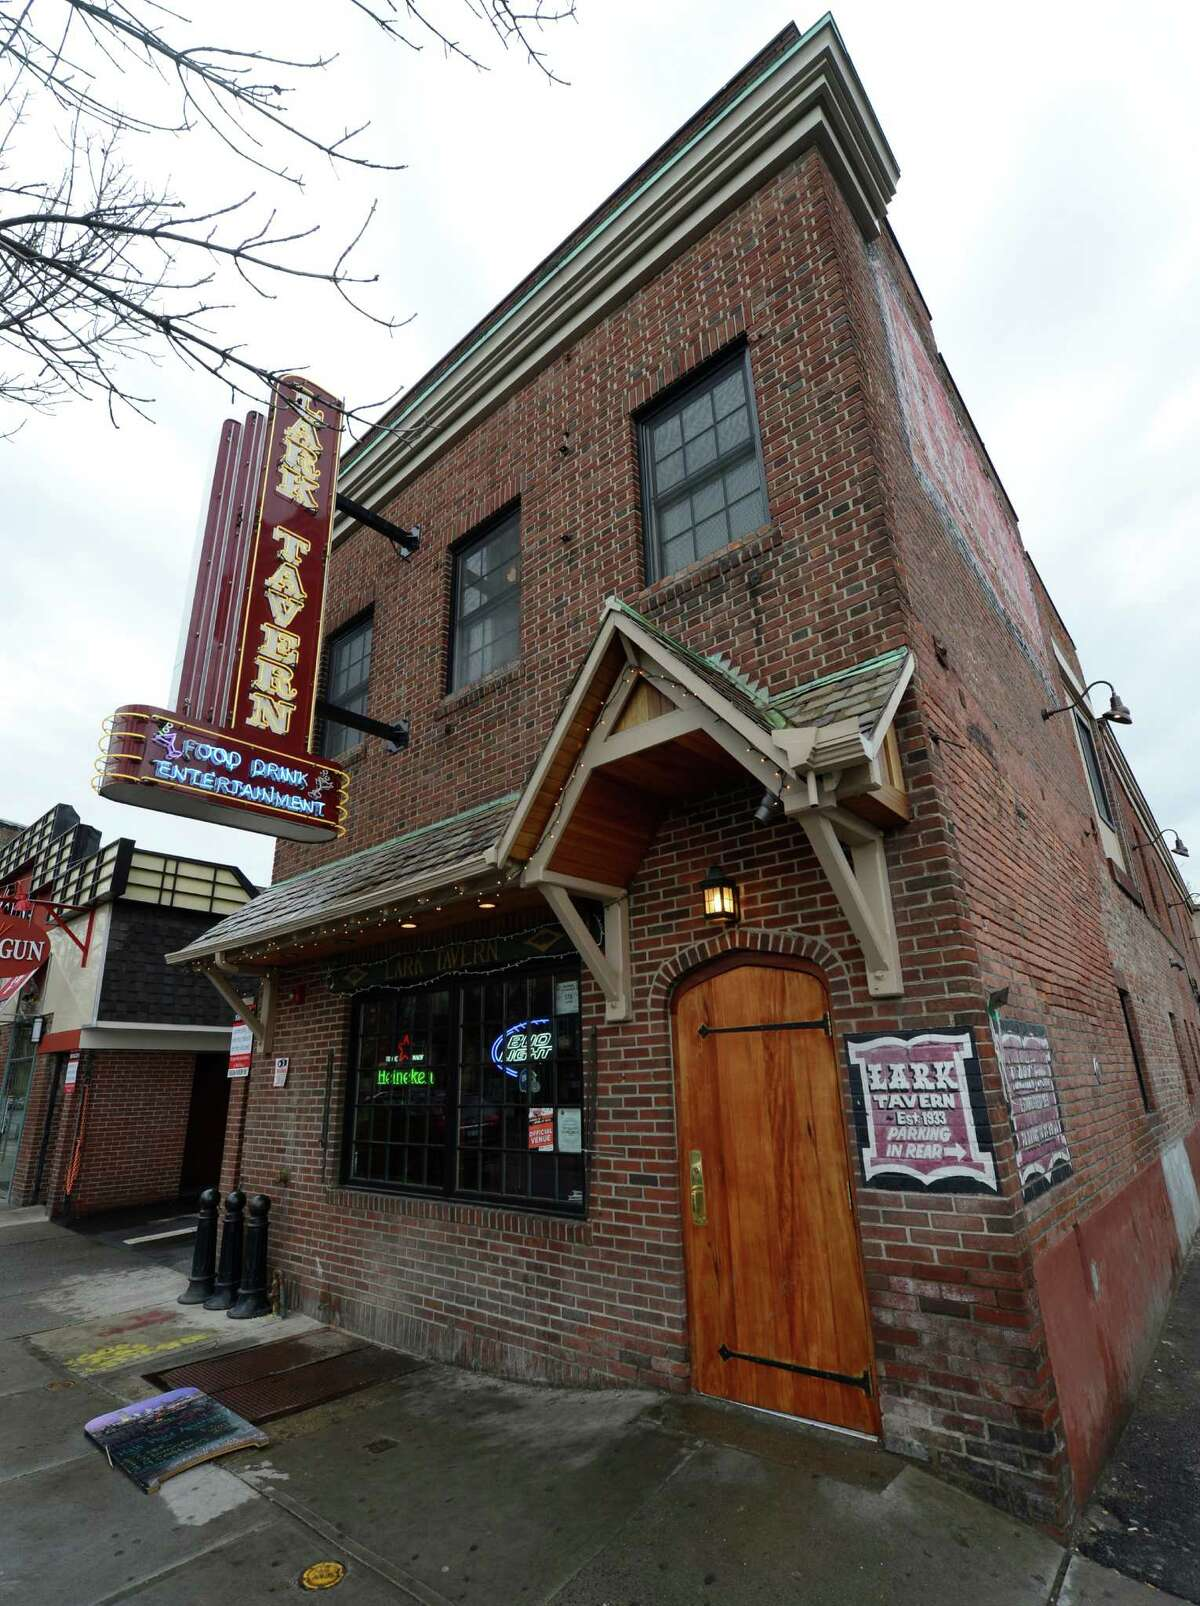 The Lark Tavern, a watering hole near the corner of Lark Street and Madison Avenue in Albany starting in 1933, has been closed since the pandemic began in March, and the building is for sale.